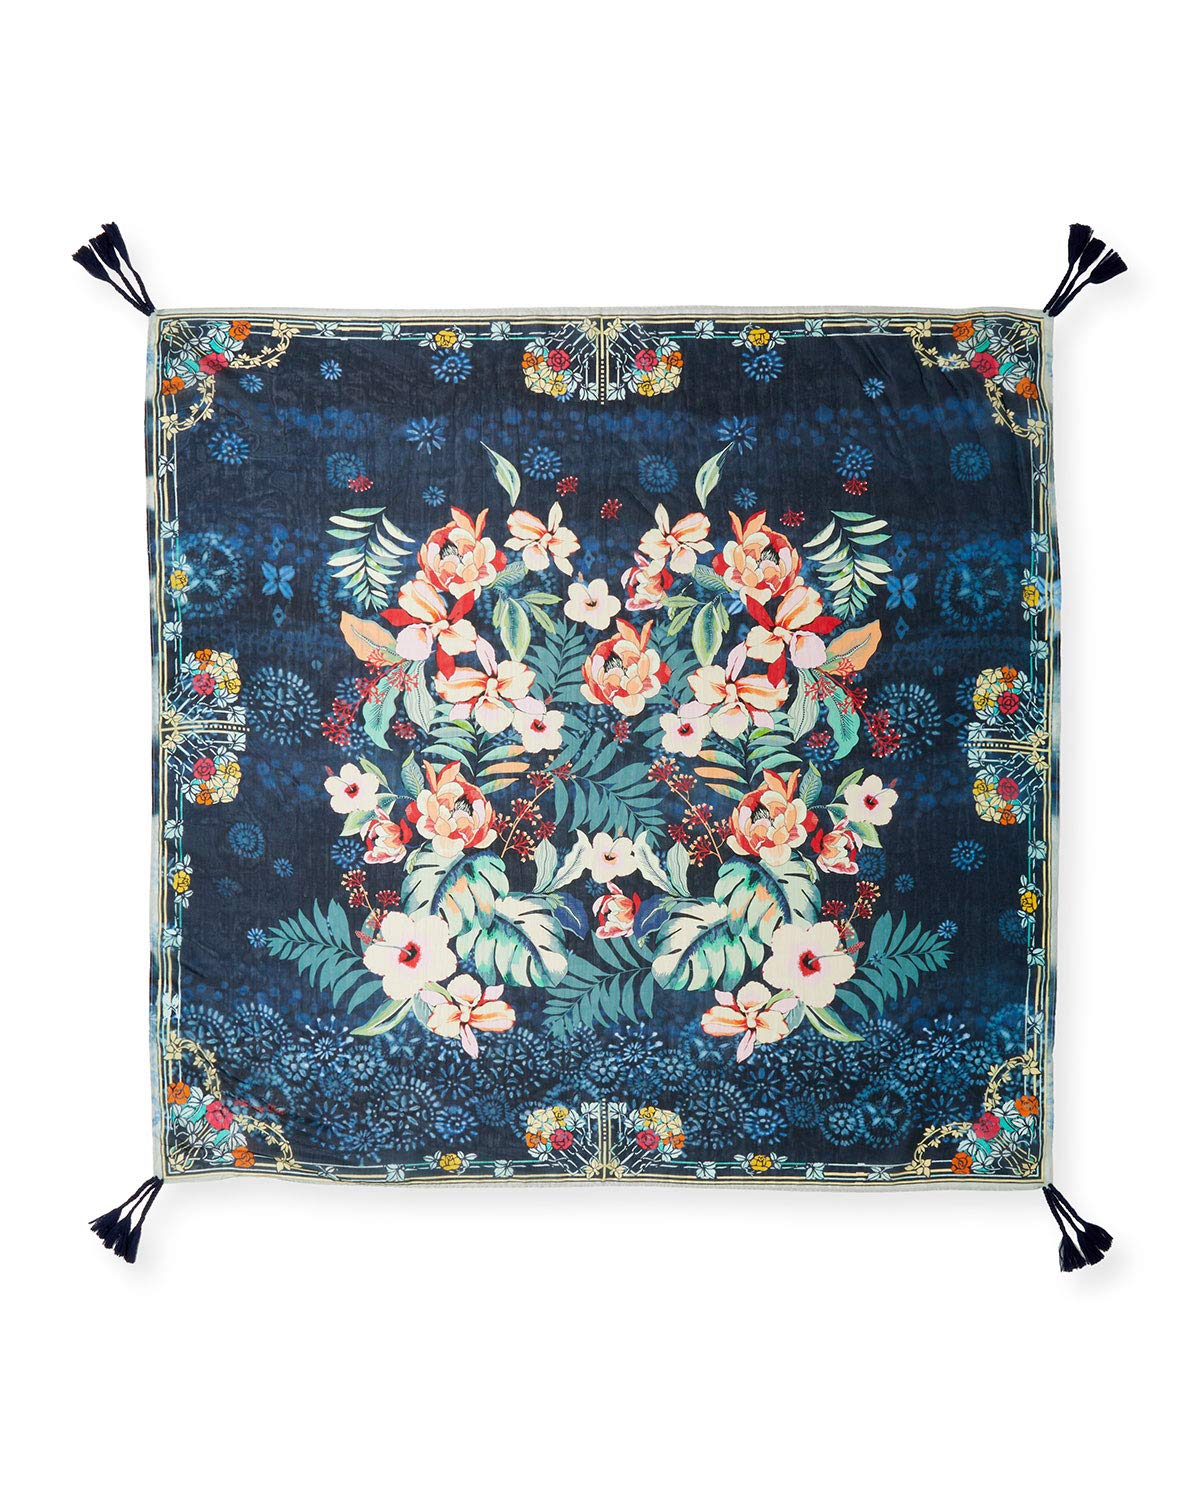 Johnny Was Women's Annia Scarf, Multi, O/S by Johnny Was